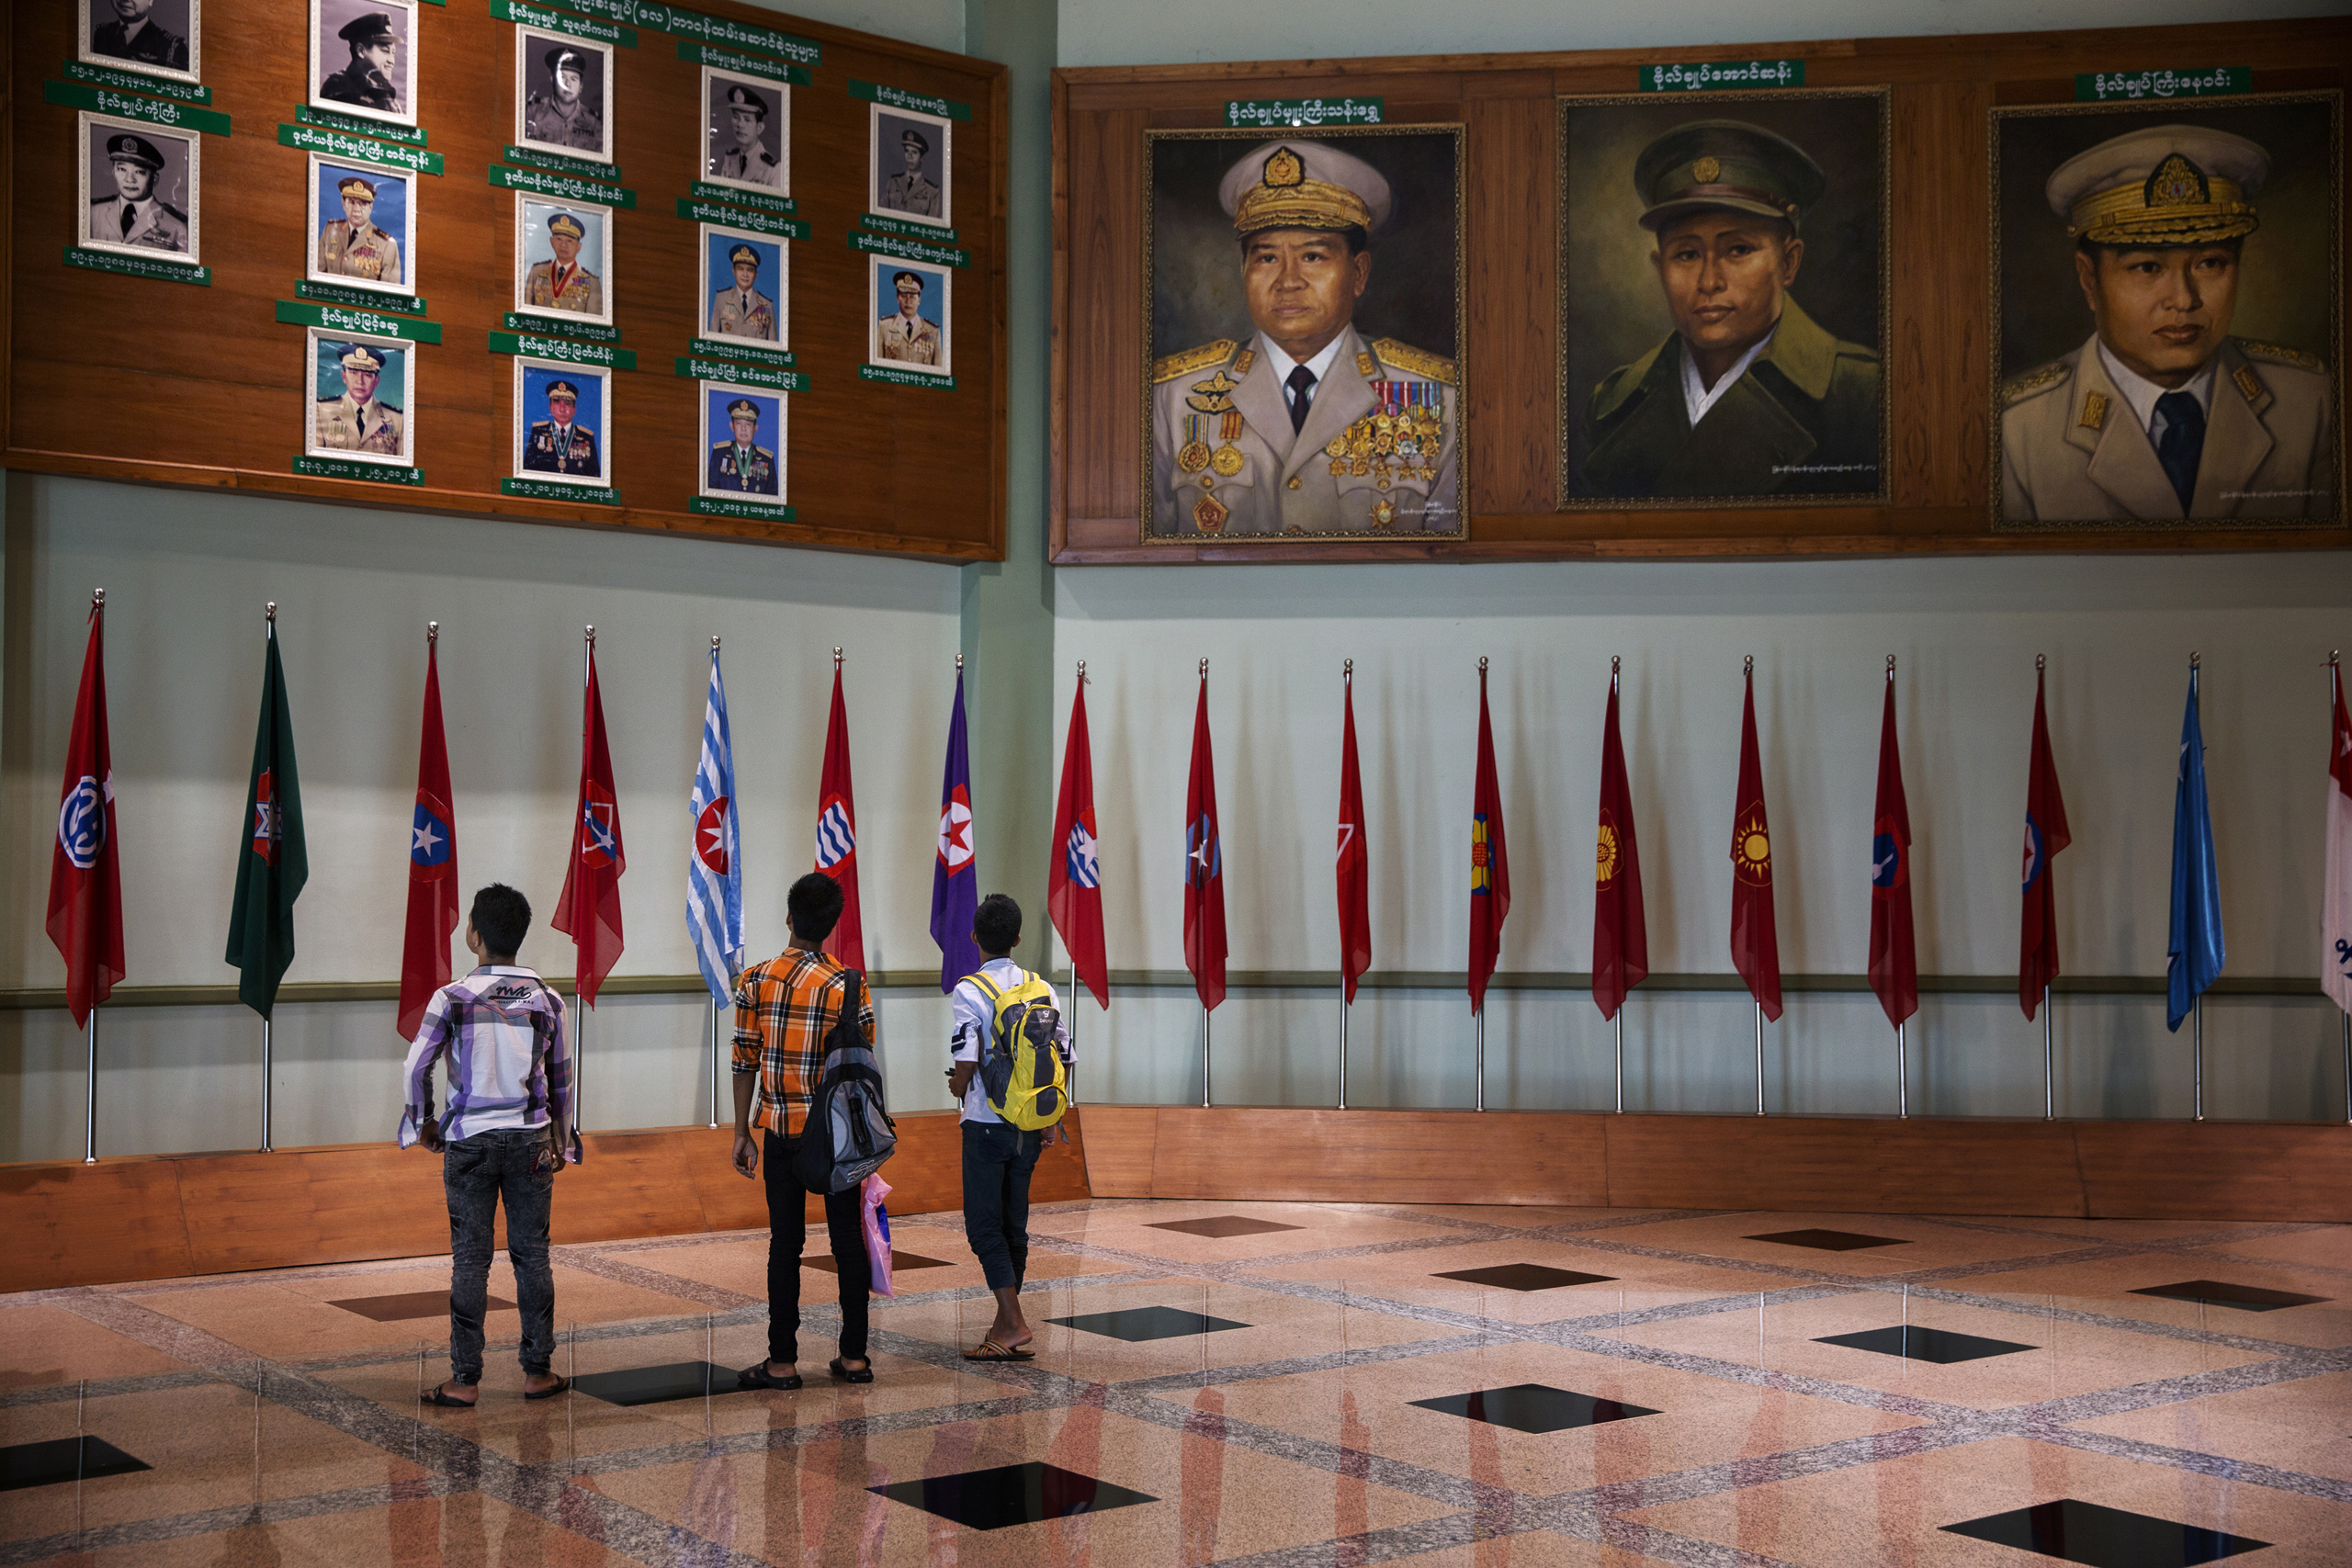 Students visit the Military Museum where  paintings of military leaders hang in Naypyidaw, Burma, Sept. 19, 2014.